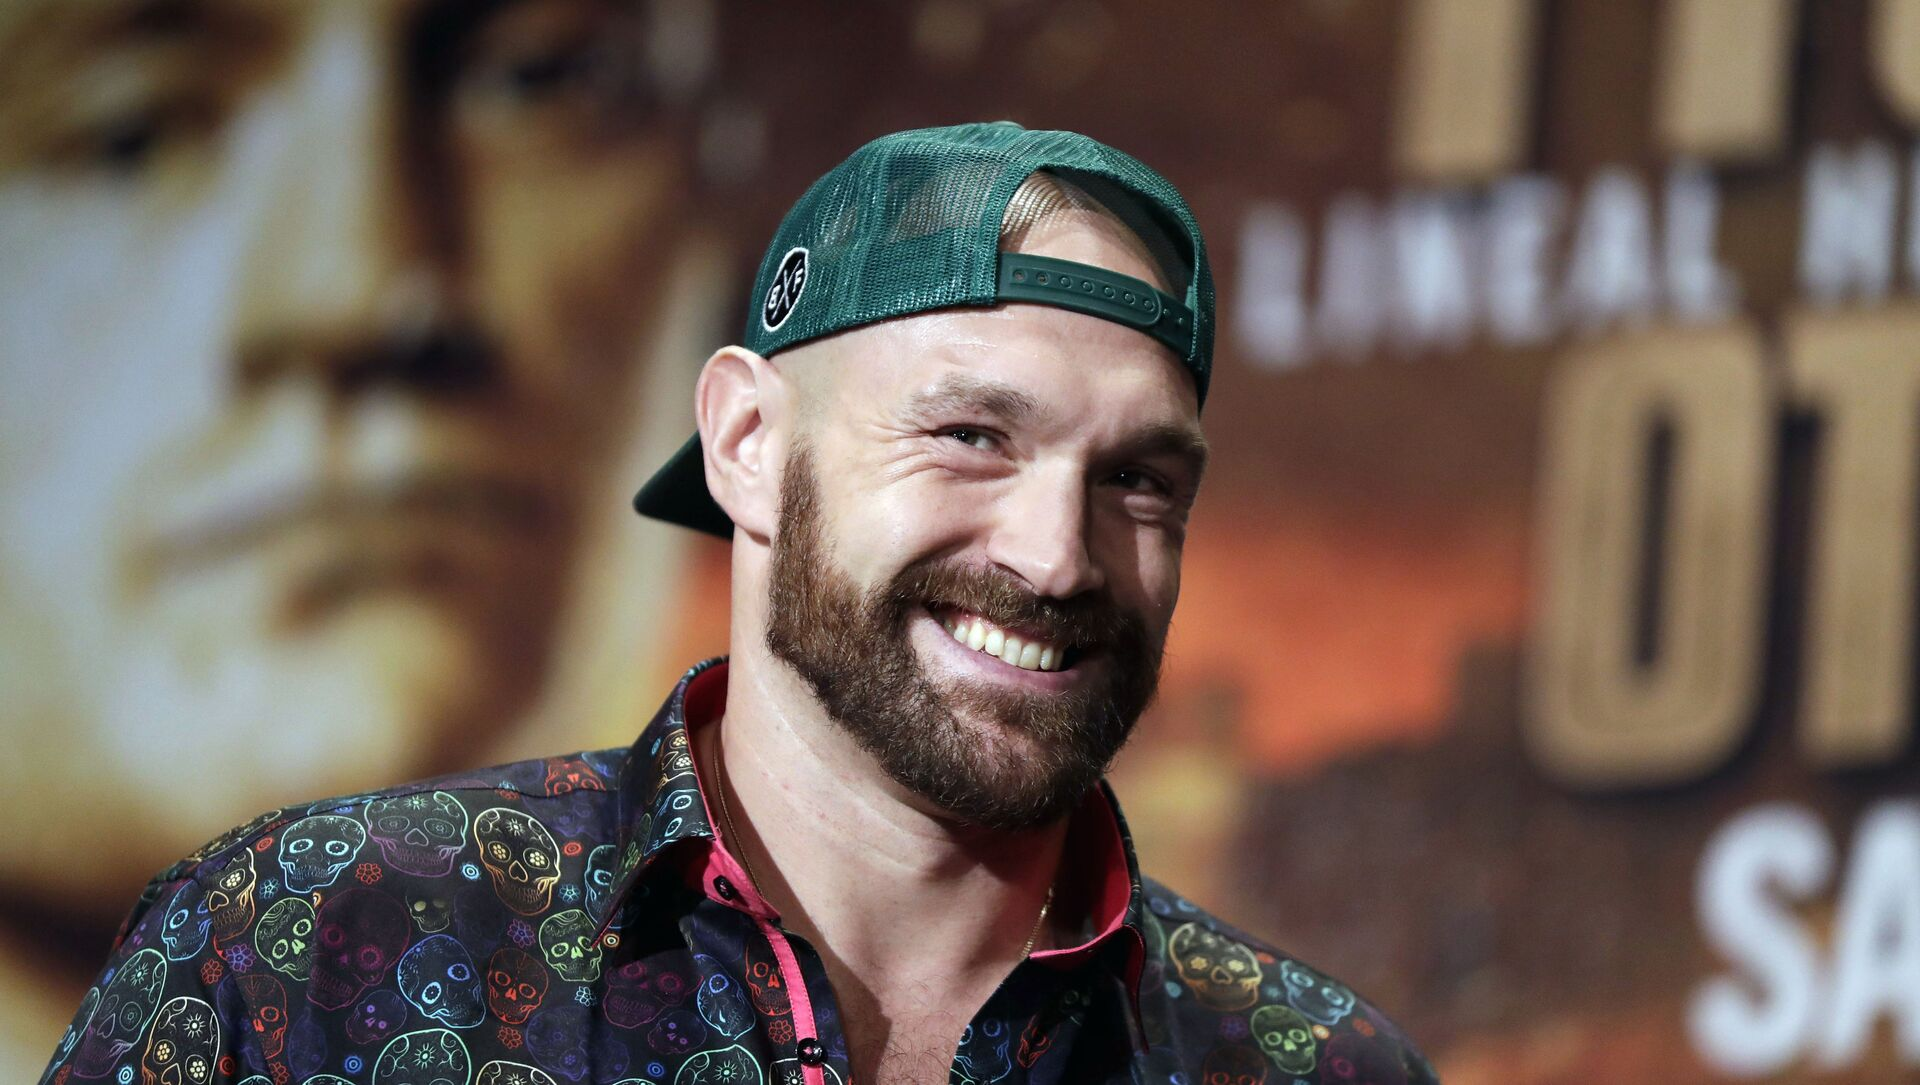 In this Sept. 11, 2019 file photo, Tyson Fury smiles during a press conference in Las Vegas. - Sputnik International, 1920, 02.08.2021